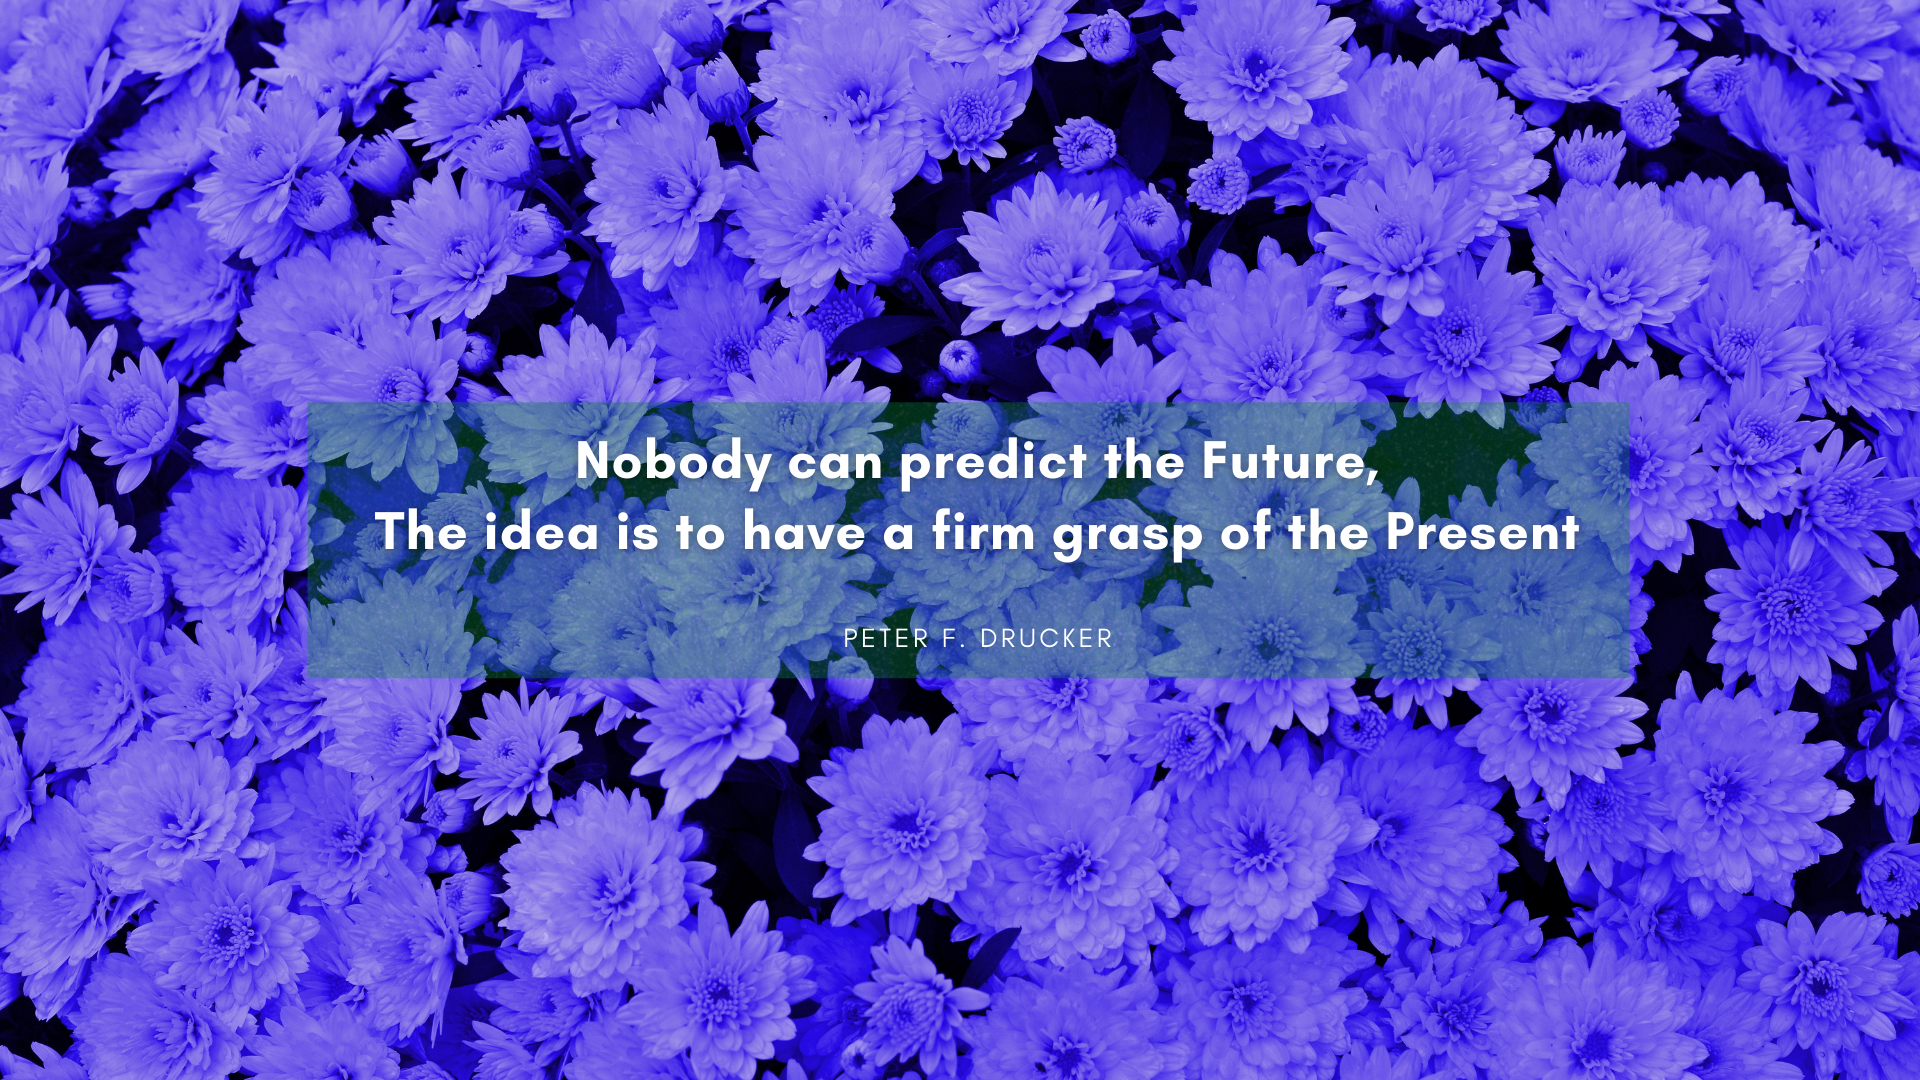 Nobody can predict the Future, The idea is to have a firm grasp of the Present. – Peter F. Drucker[1920×1080][OC]